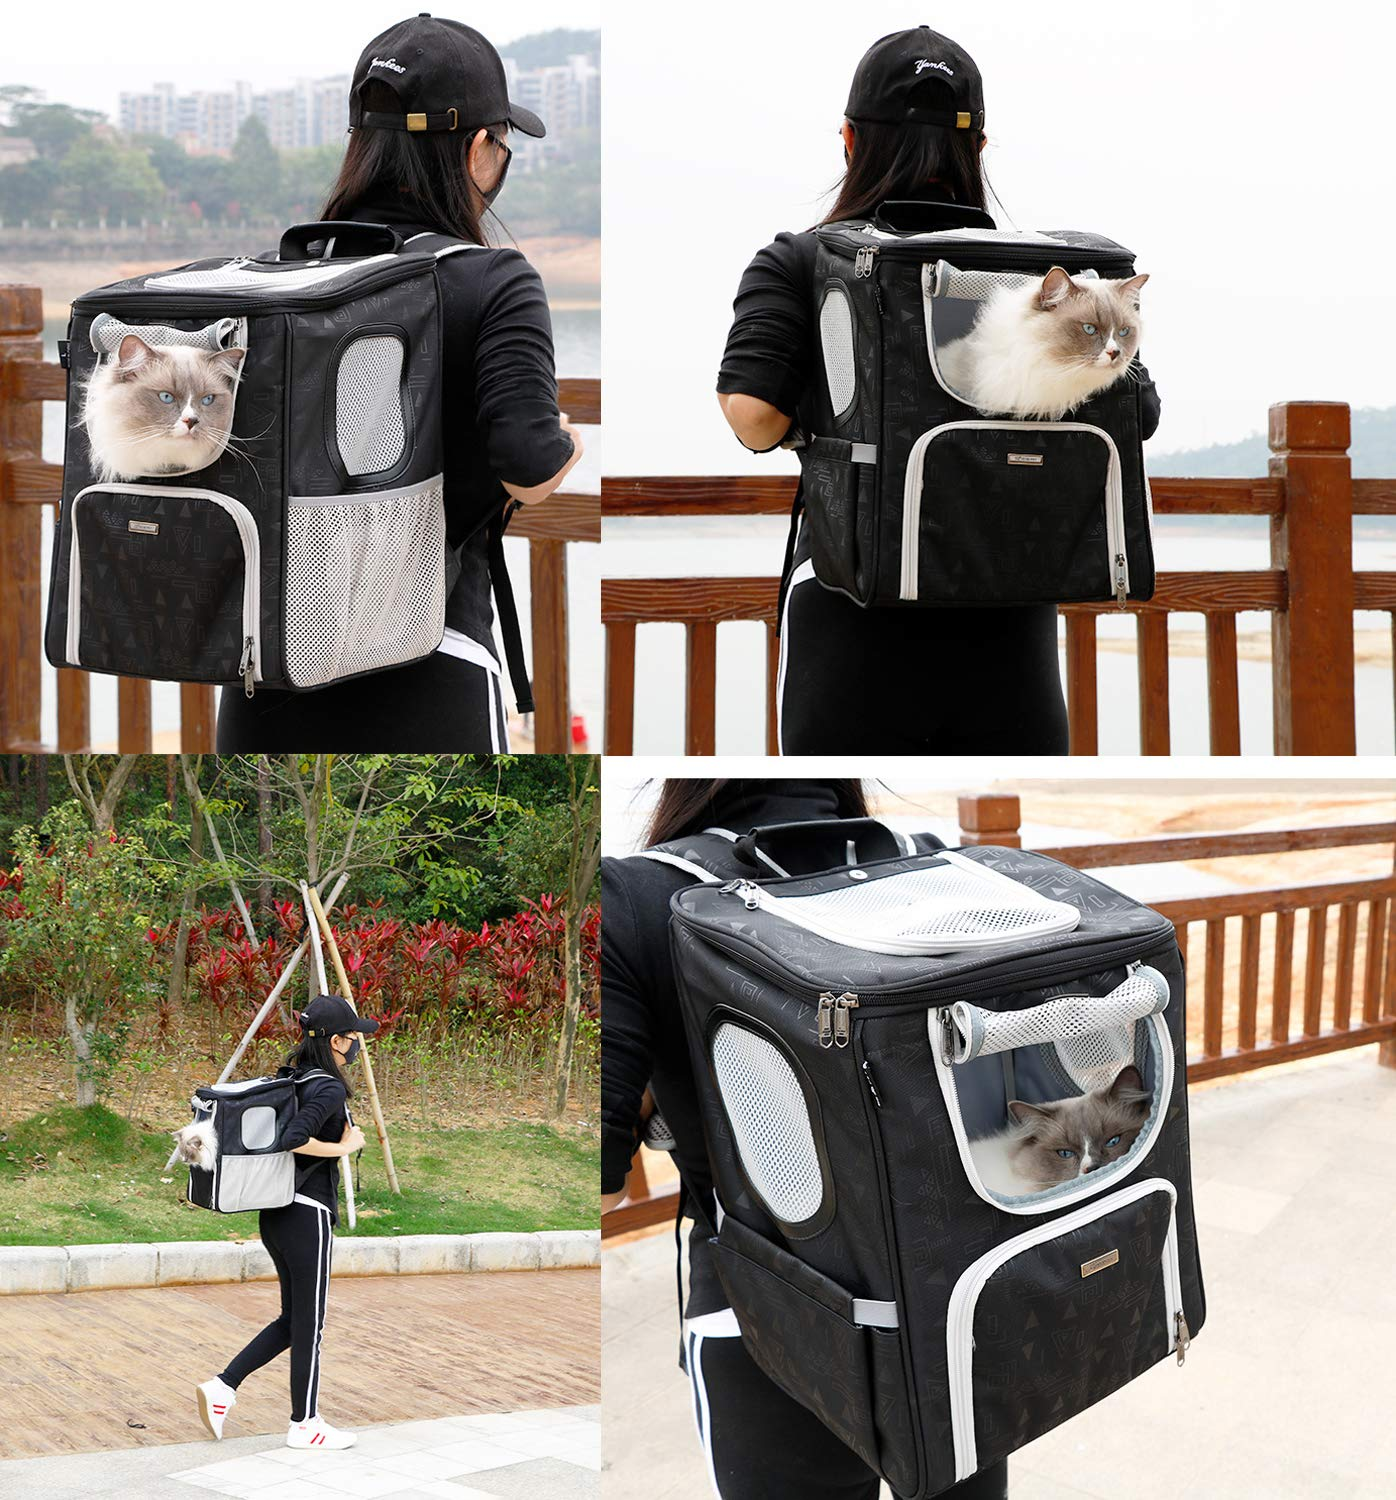 DODOPET Pet Backpack Carrier for Dog/Cat/Other Animals Up to 20 lbs